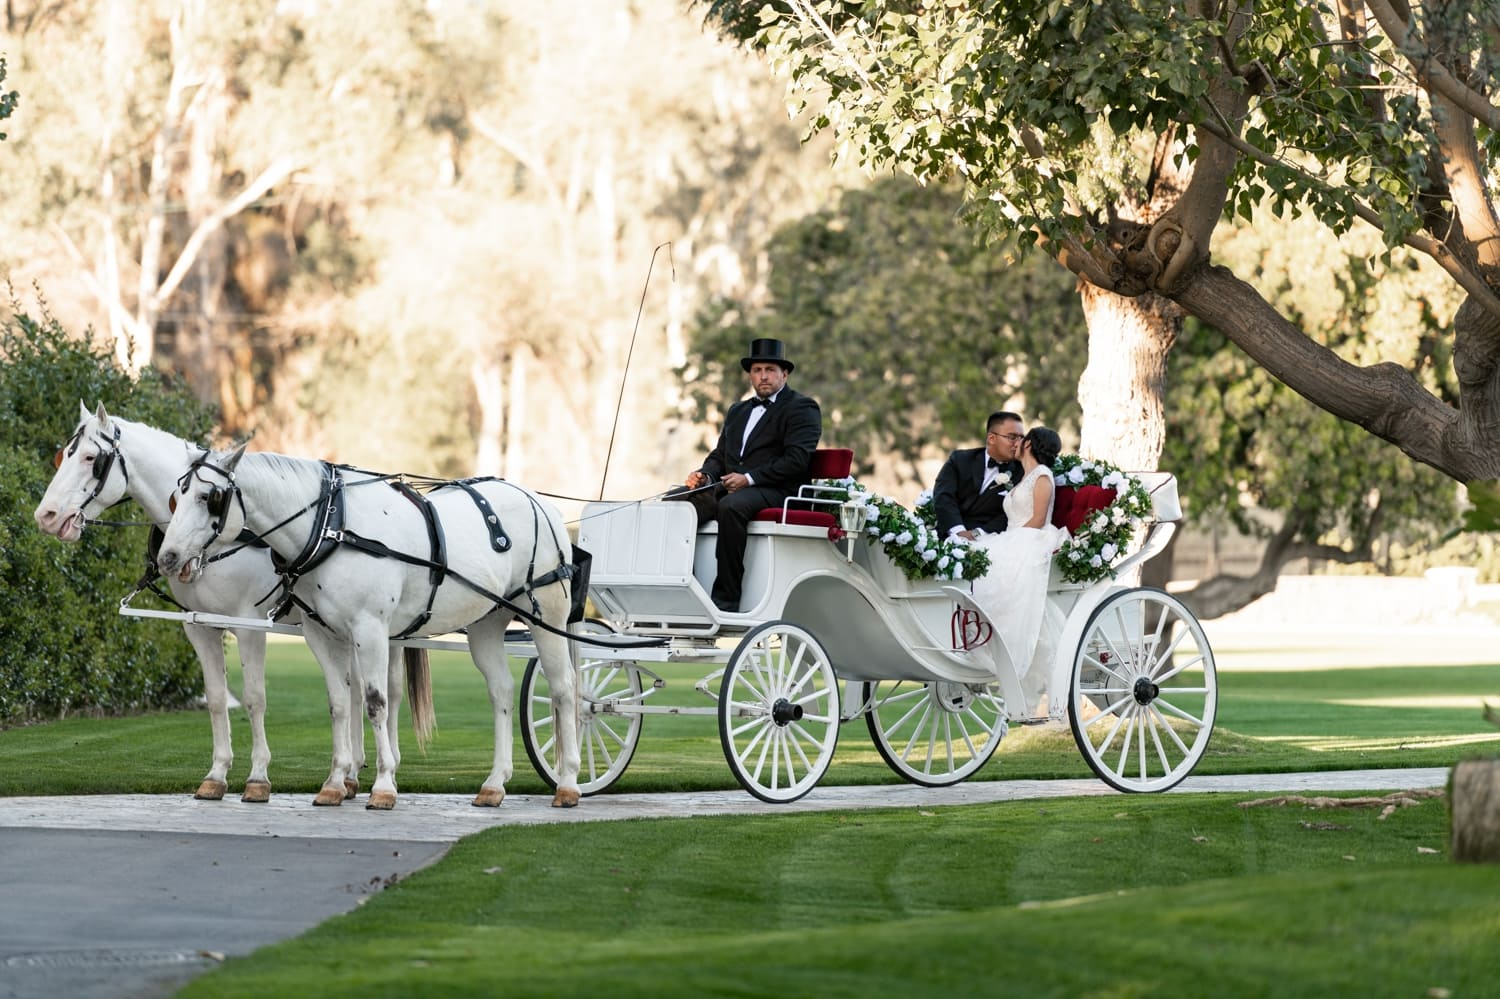 Bride and groom in a horse carriage at the Grand Tradition Estate.